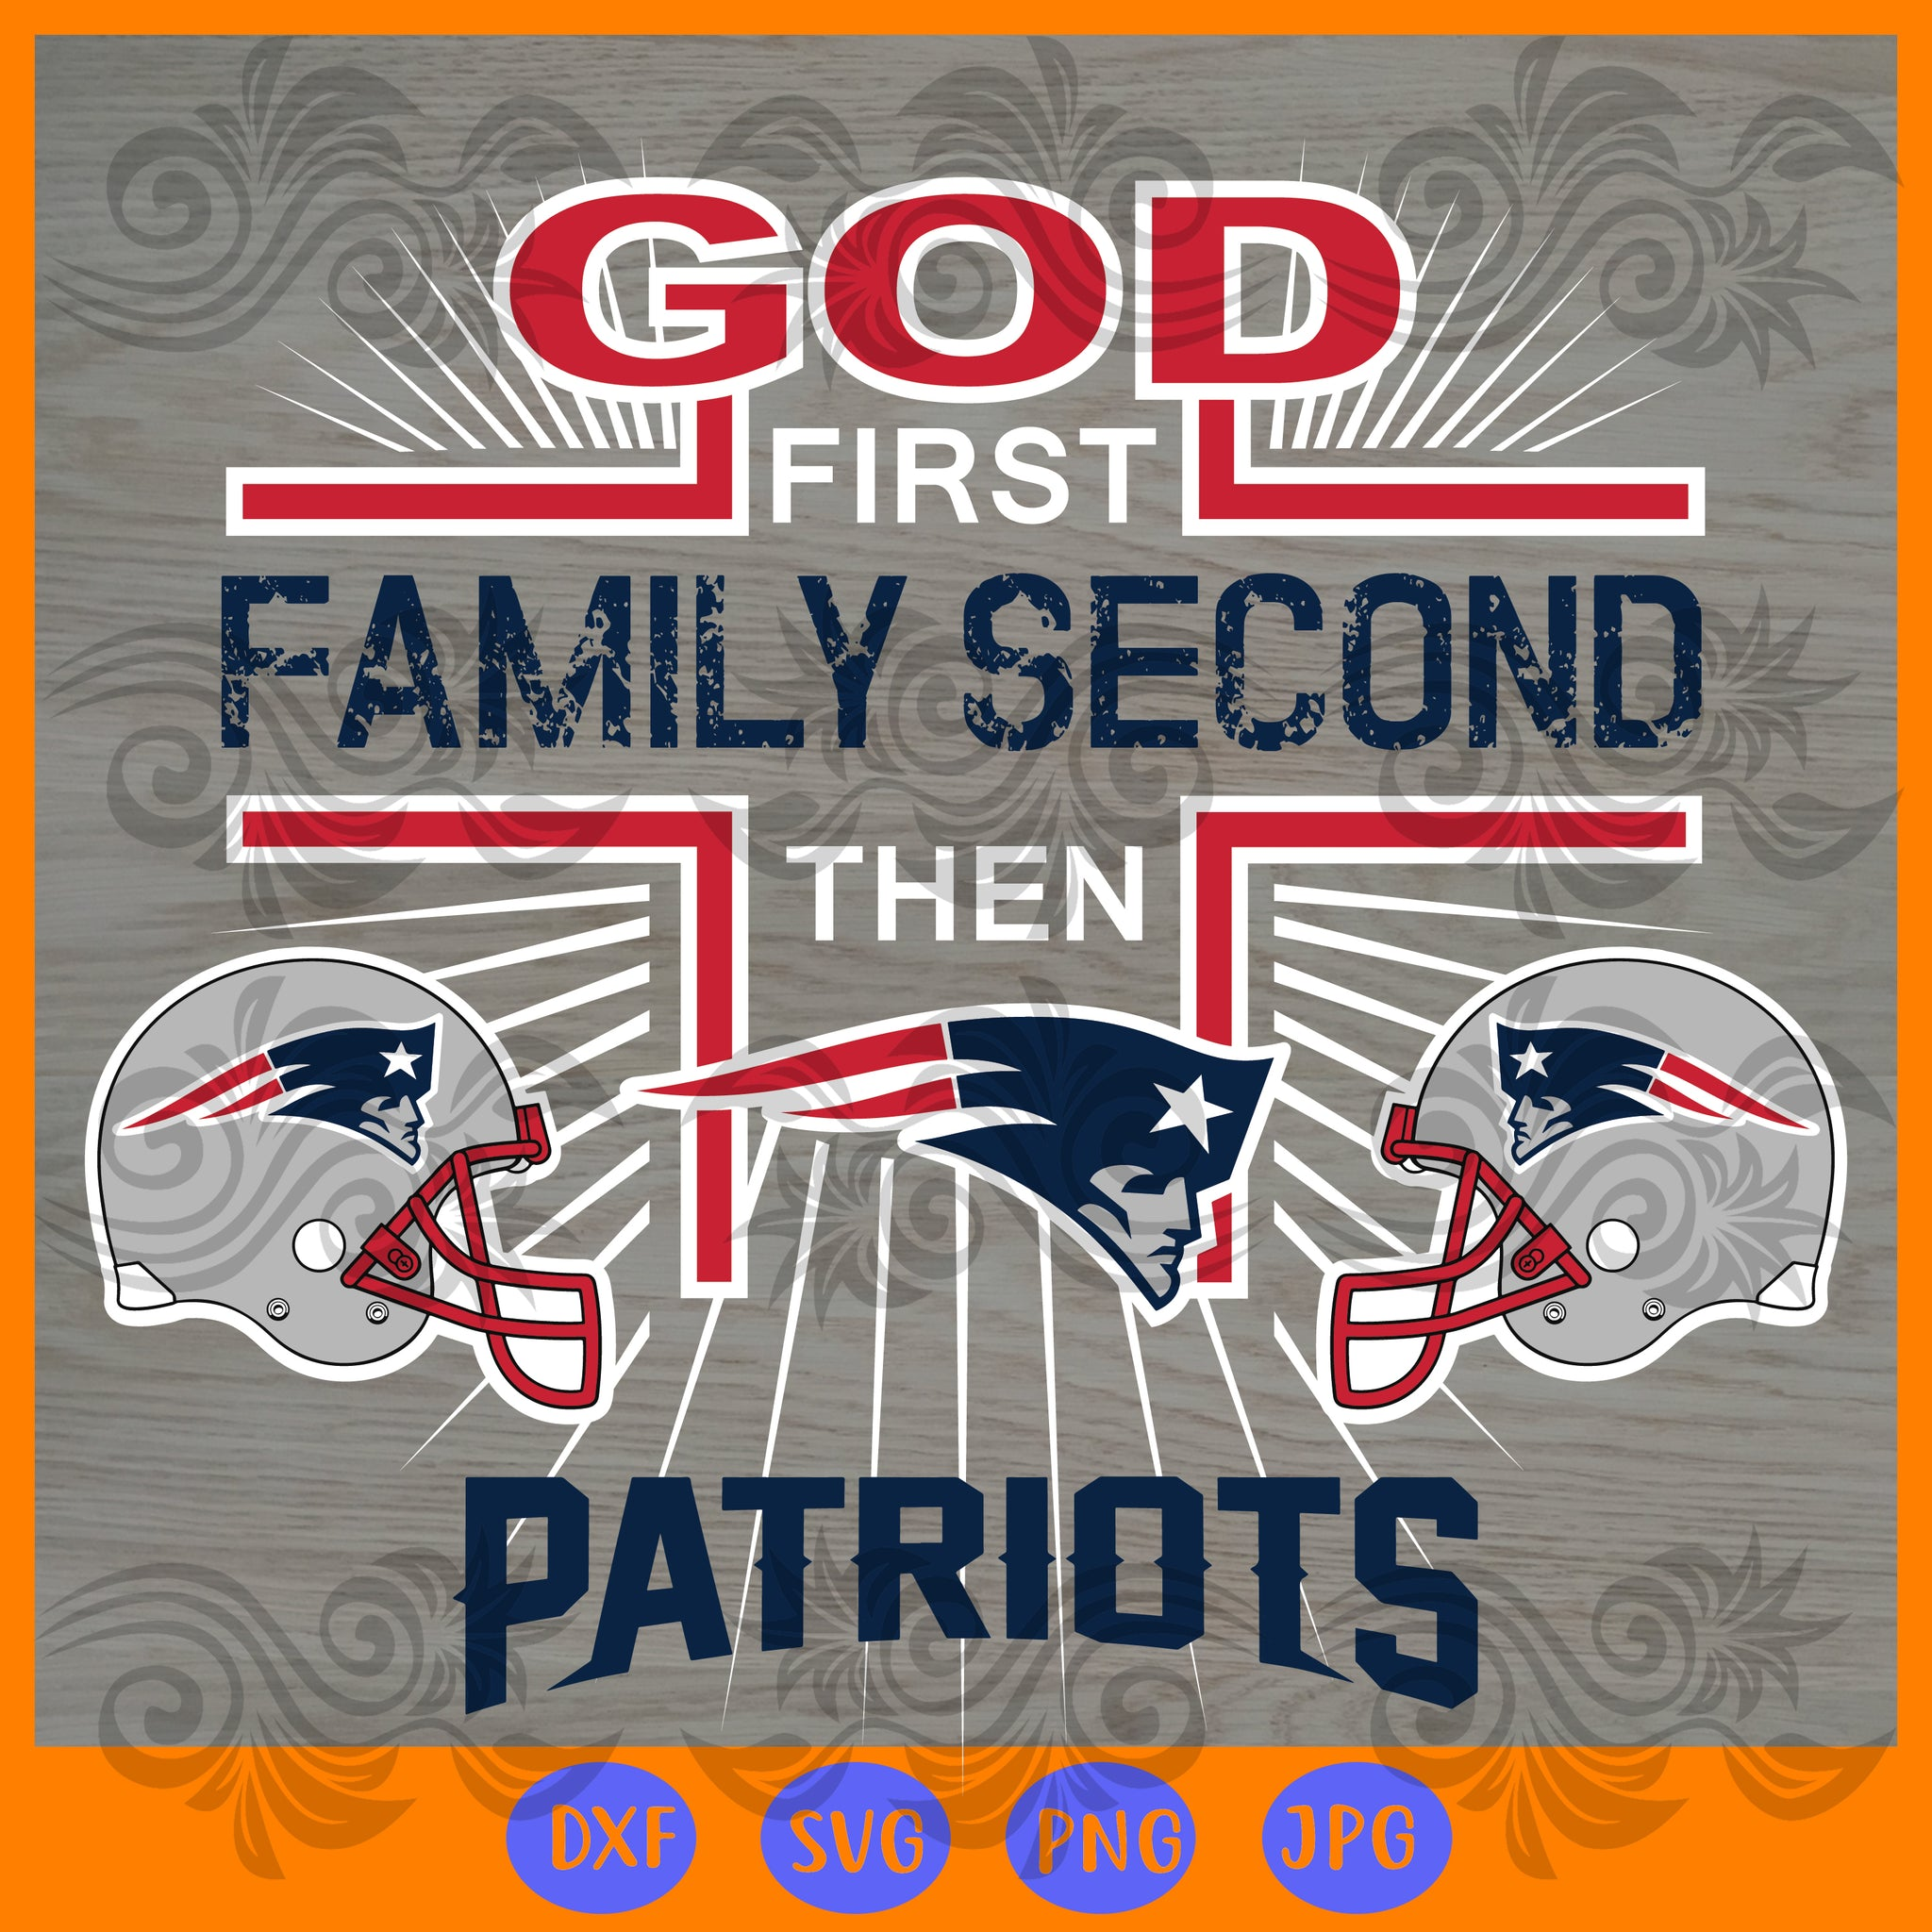 New England Patriots SVG,SVG Files For Silhouette, Files For Cricut, SVG, DXF, EPS, PNG Instant Download